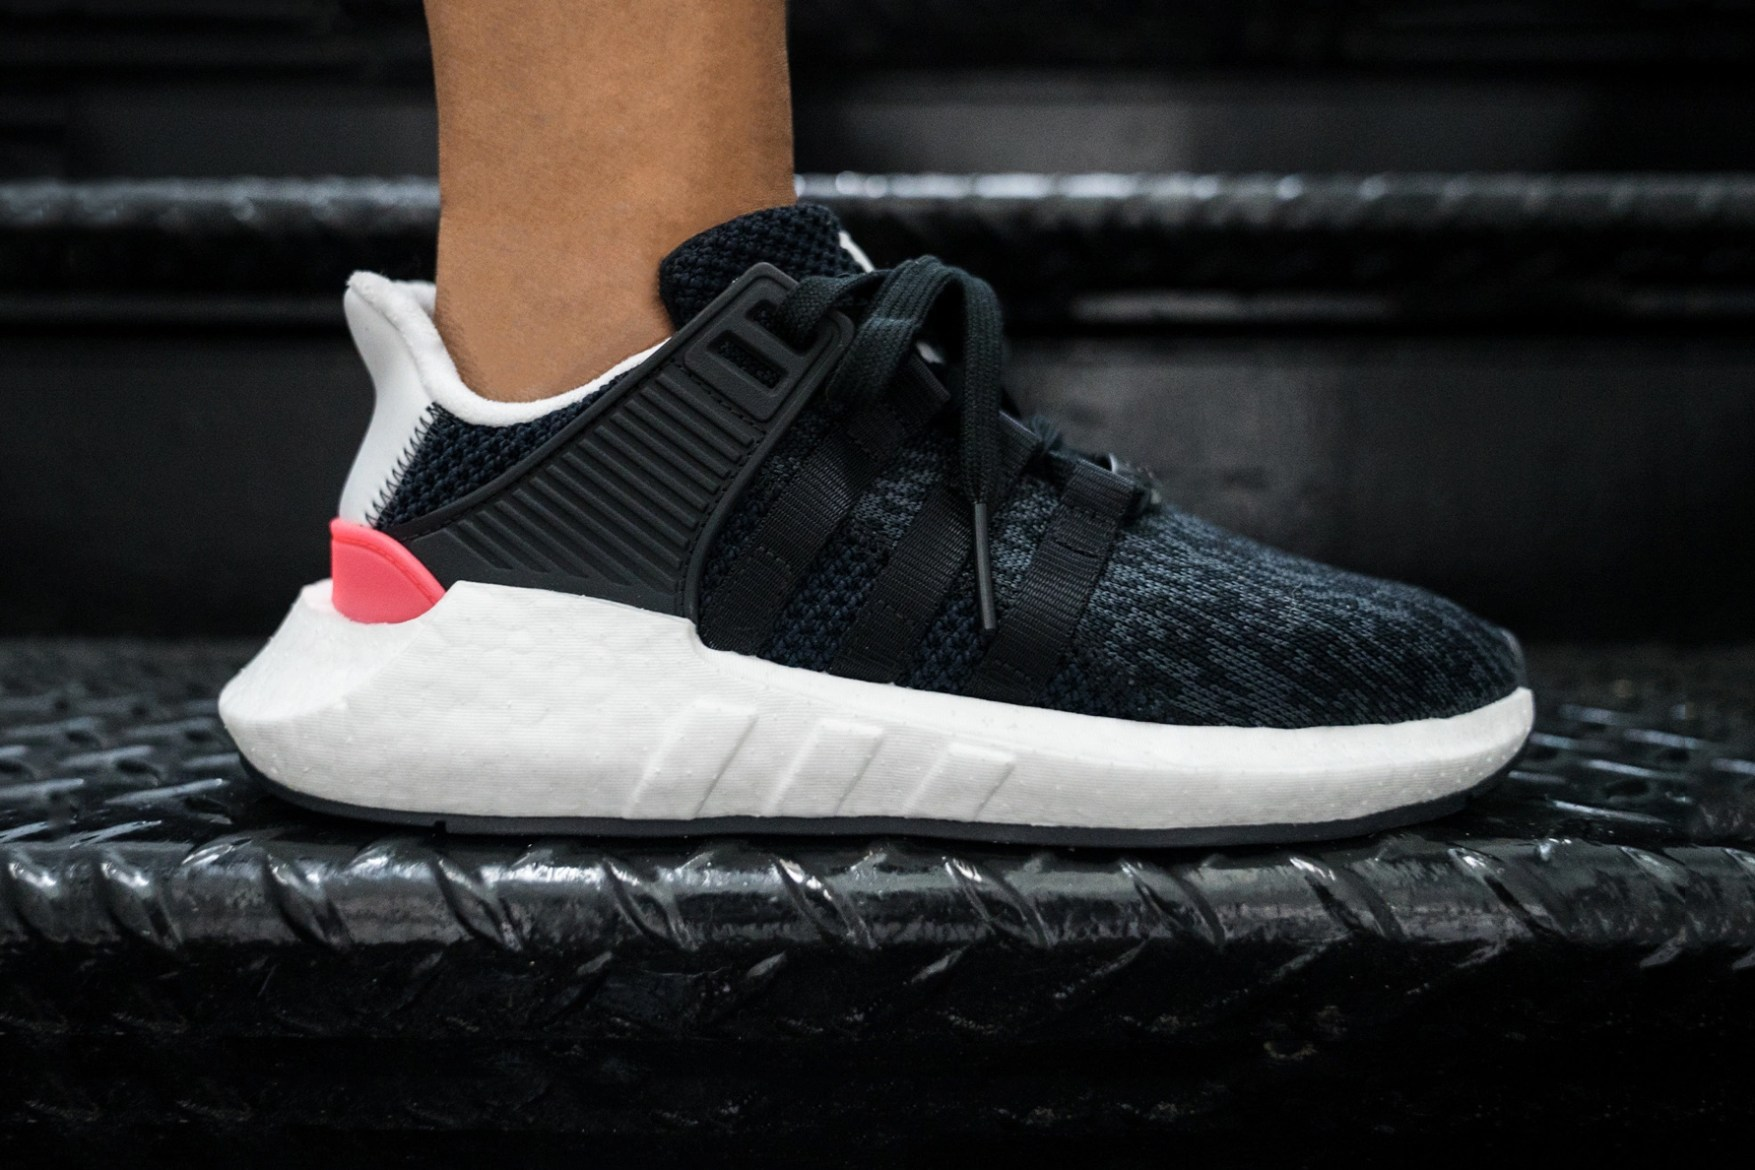 adidas EQT Support 93/17 Boost Launching In Core Black Very Soon